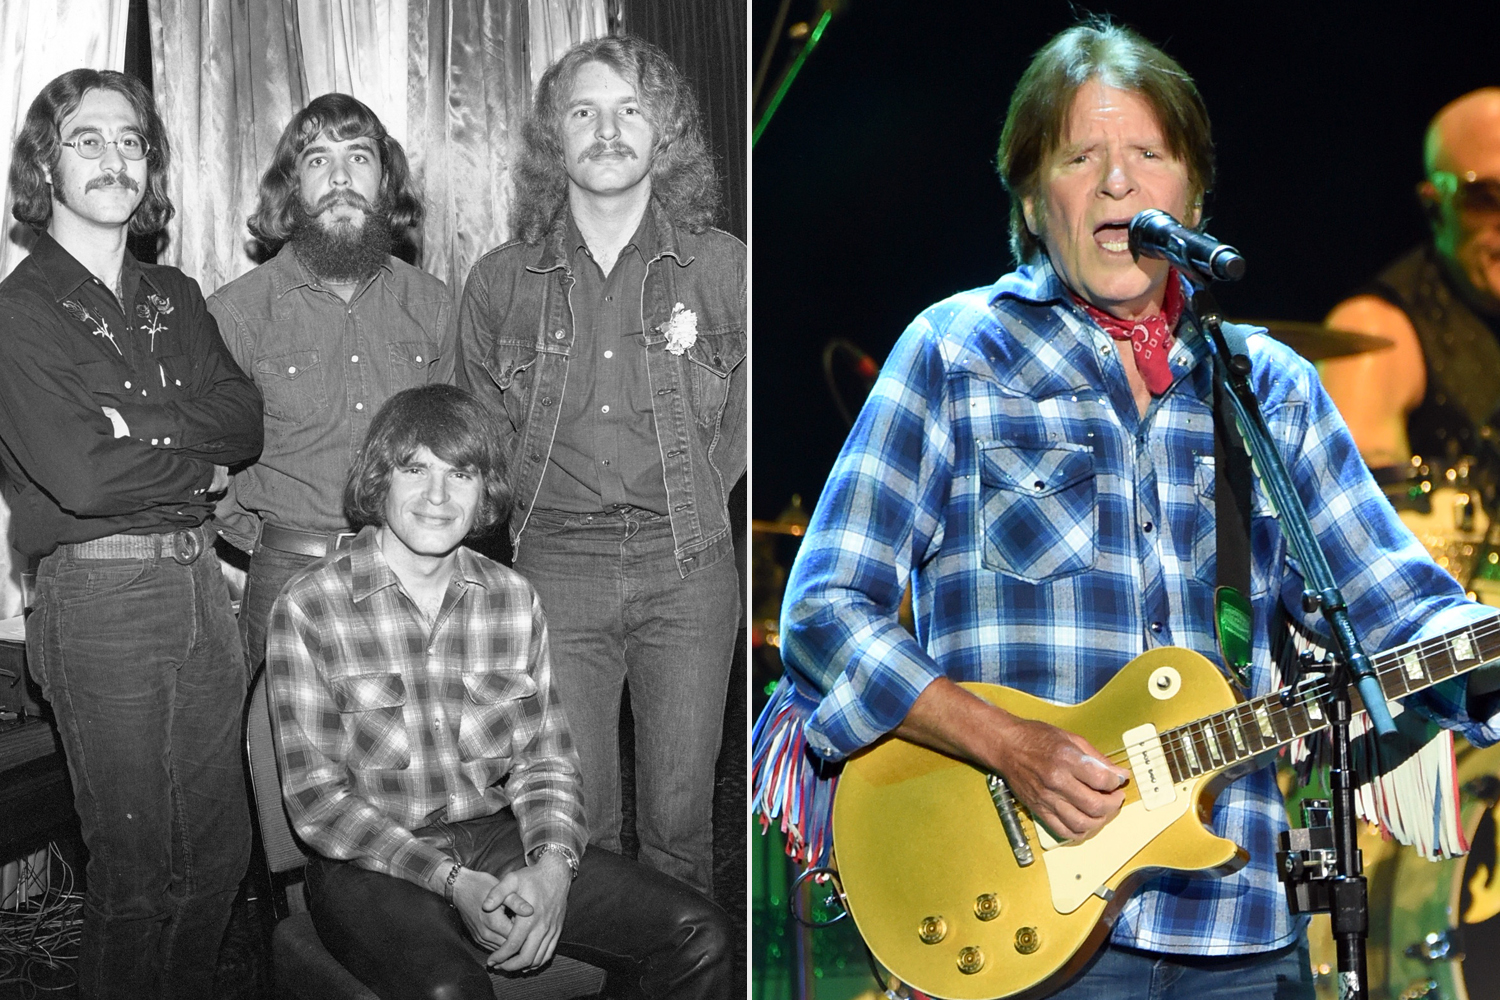 Creedence Clearwater Revival; John Fogerty